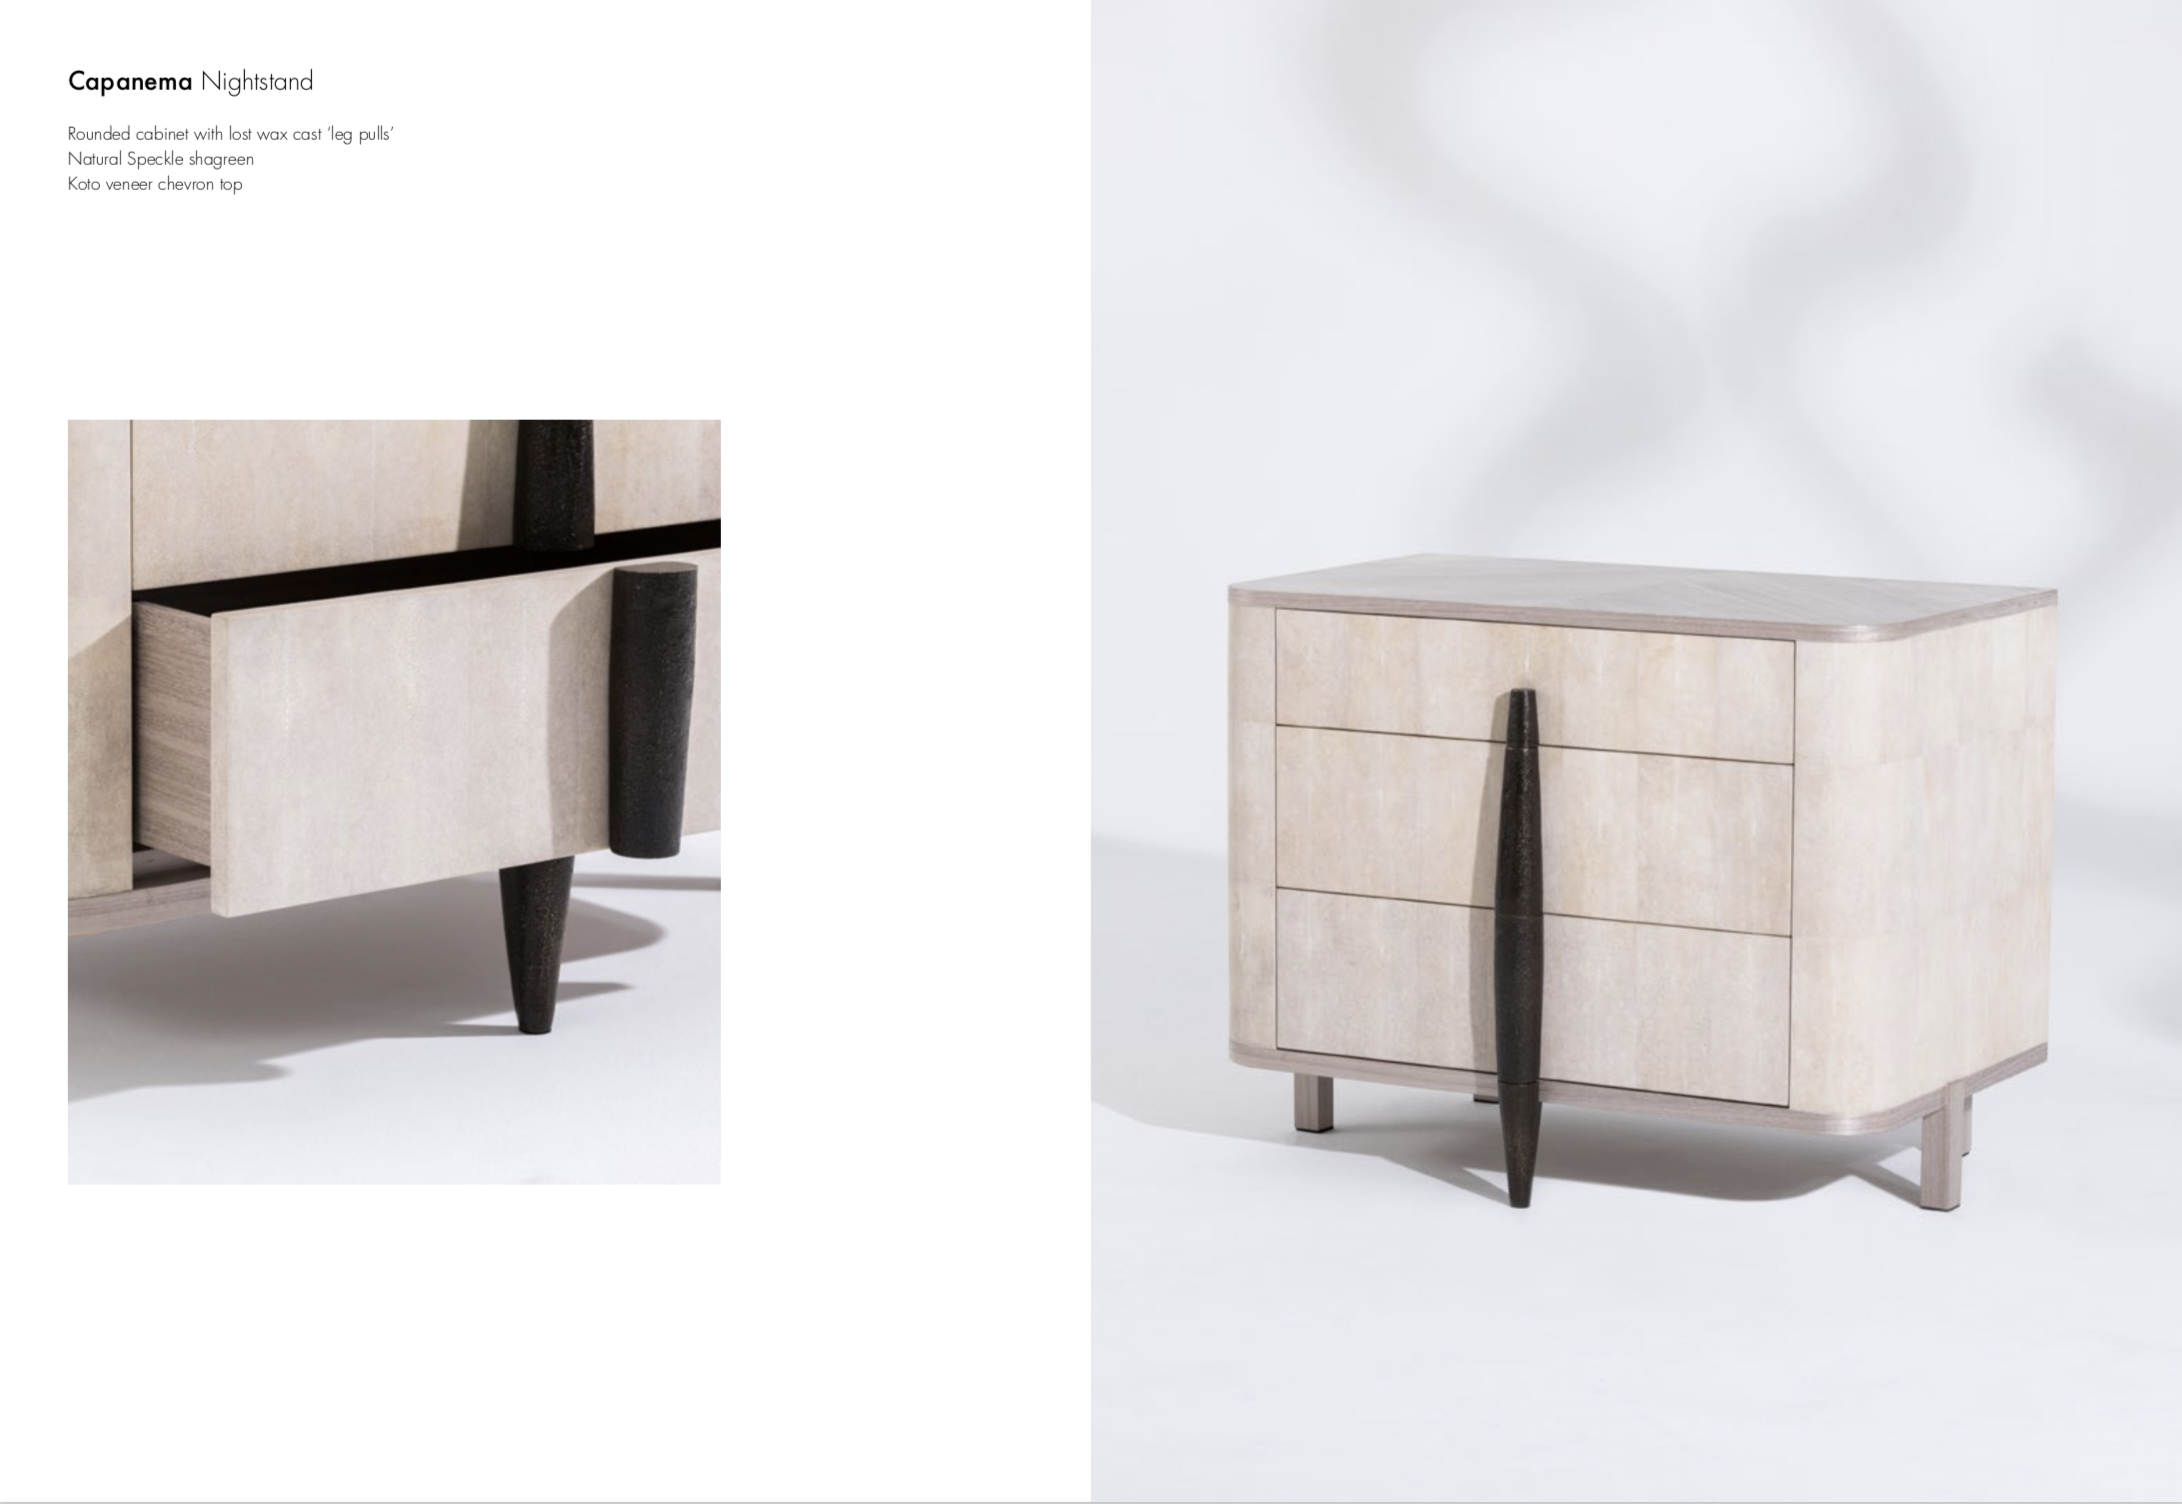 Copanema Nightstand